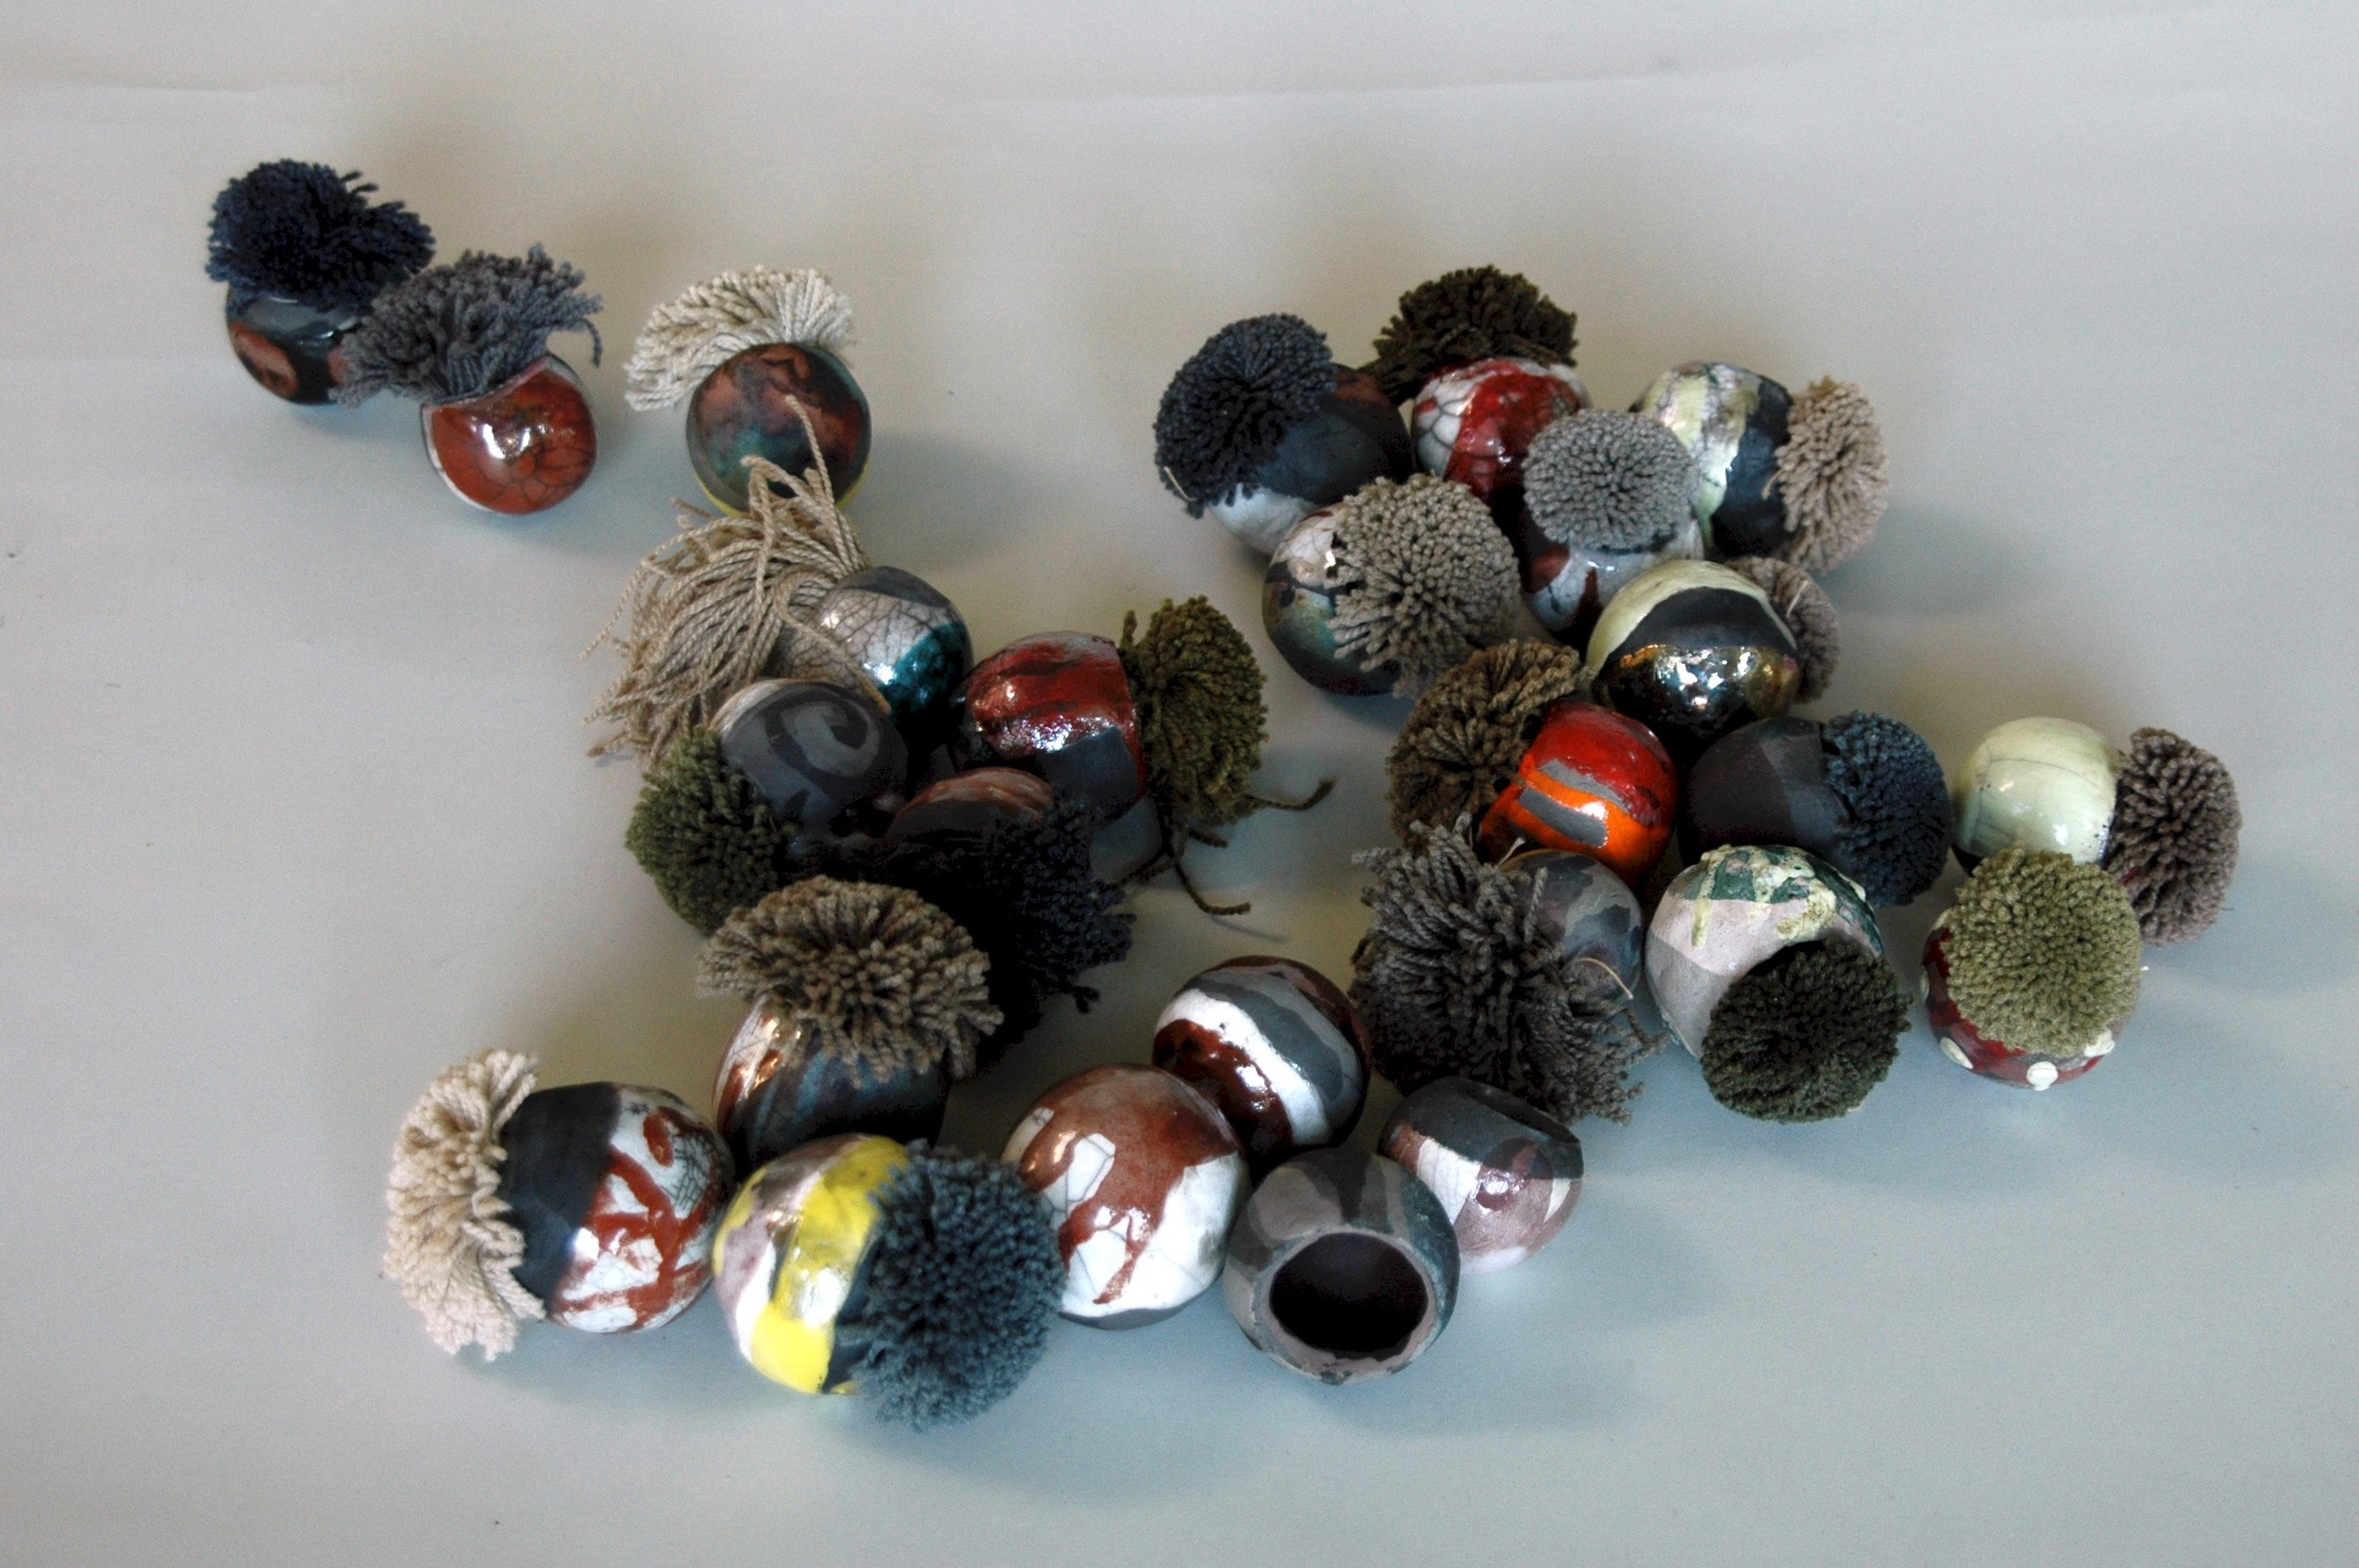 """Symbiosis: echinoderms, sea urchins, were my inspiration. Acclimating to new culture is like being at home with the strange and the discomforting and still learning to find ease with them.  2""""h x 24""""w x 24""""d  Clay, Carpet samples  2009"""